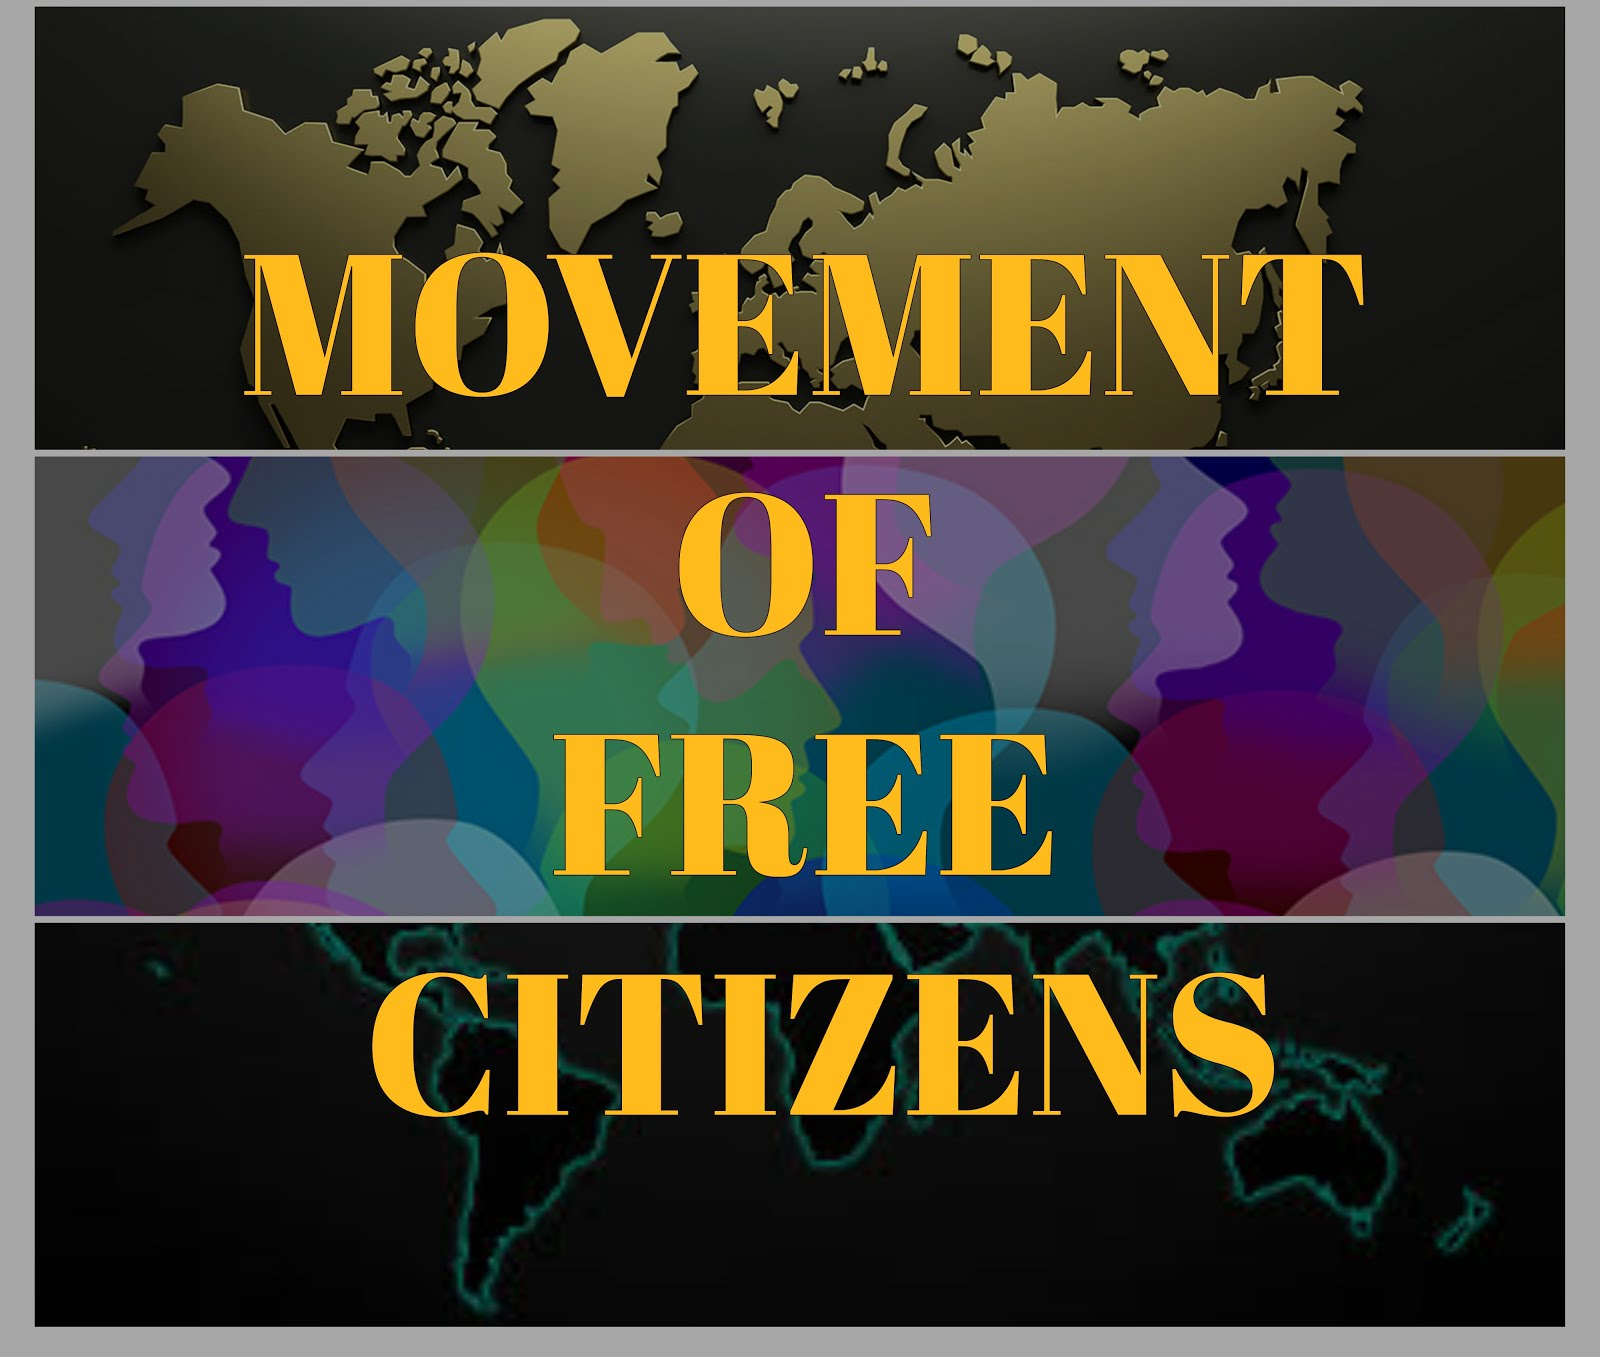 FREE CITIZENS